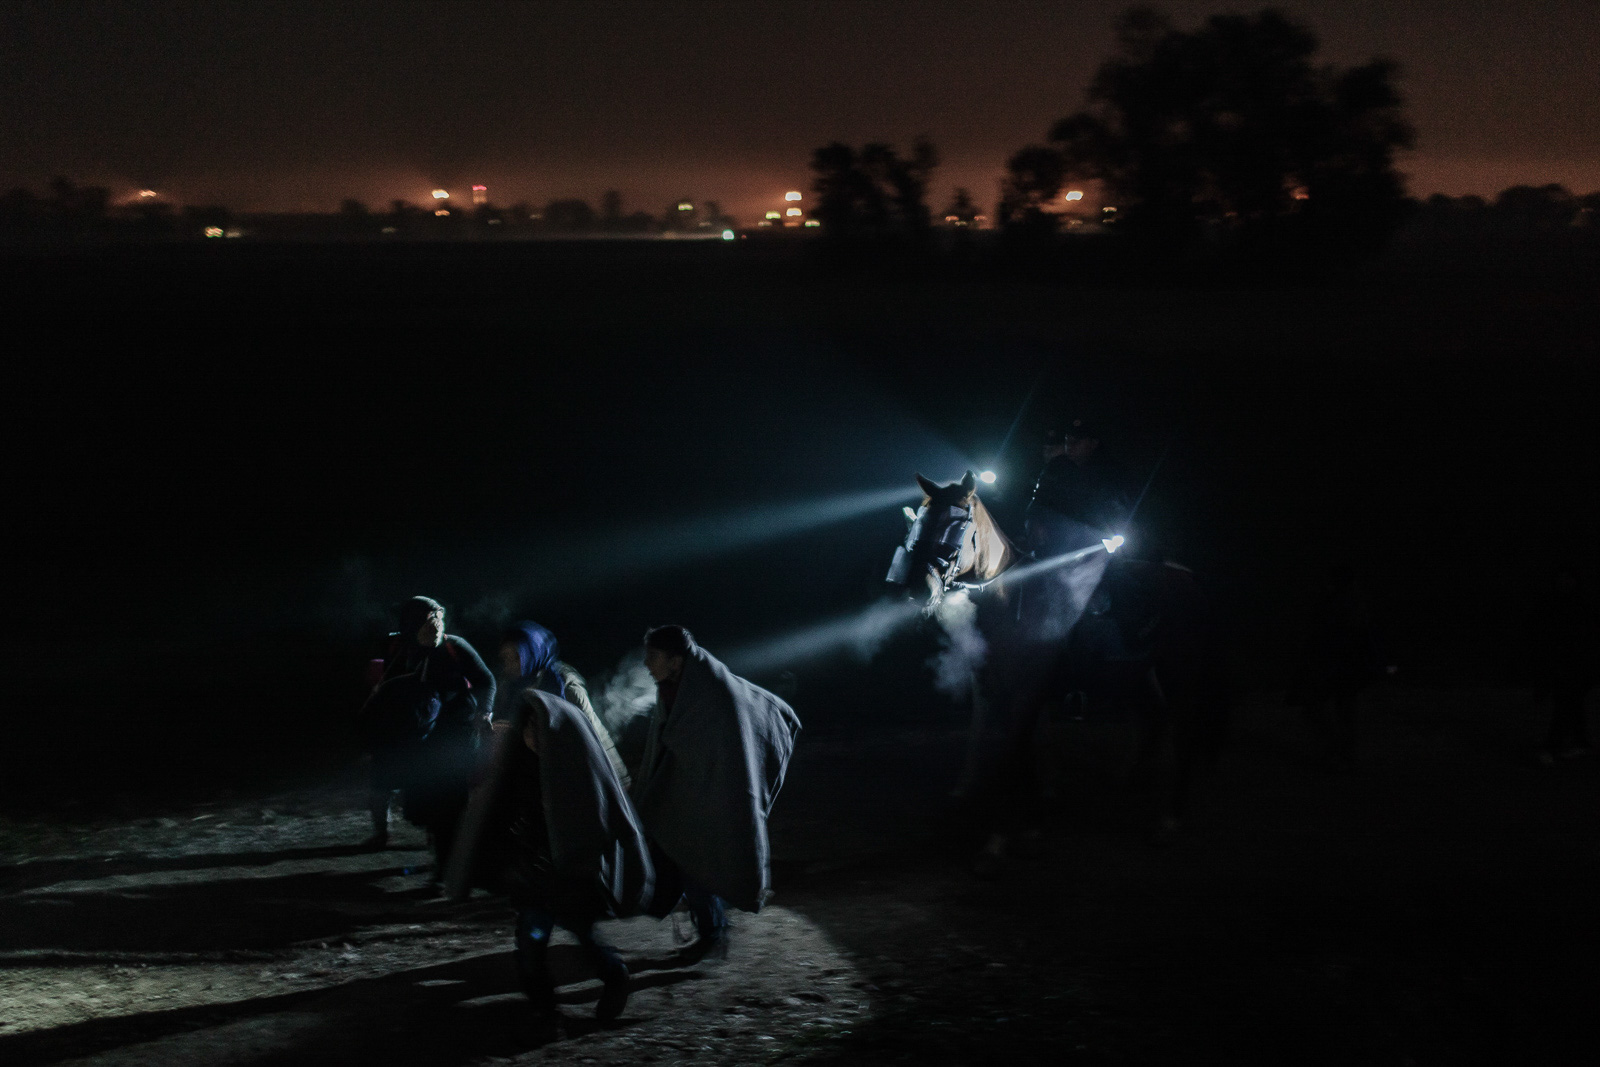 Brežice, Slovenia - October 26, 2015: Refugees are marching towards refugee registration center in Brezice during the night. The nights are getting colder, with air temperature being as low as five degrees Celsius. The Slovenian police provides an escort for the refugees on their eight kilometer march from Rigonce, where they enter Slovenia.